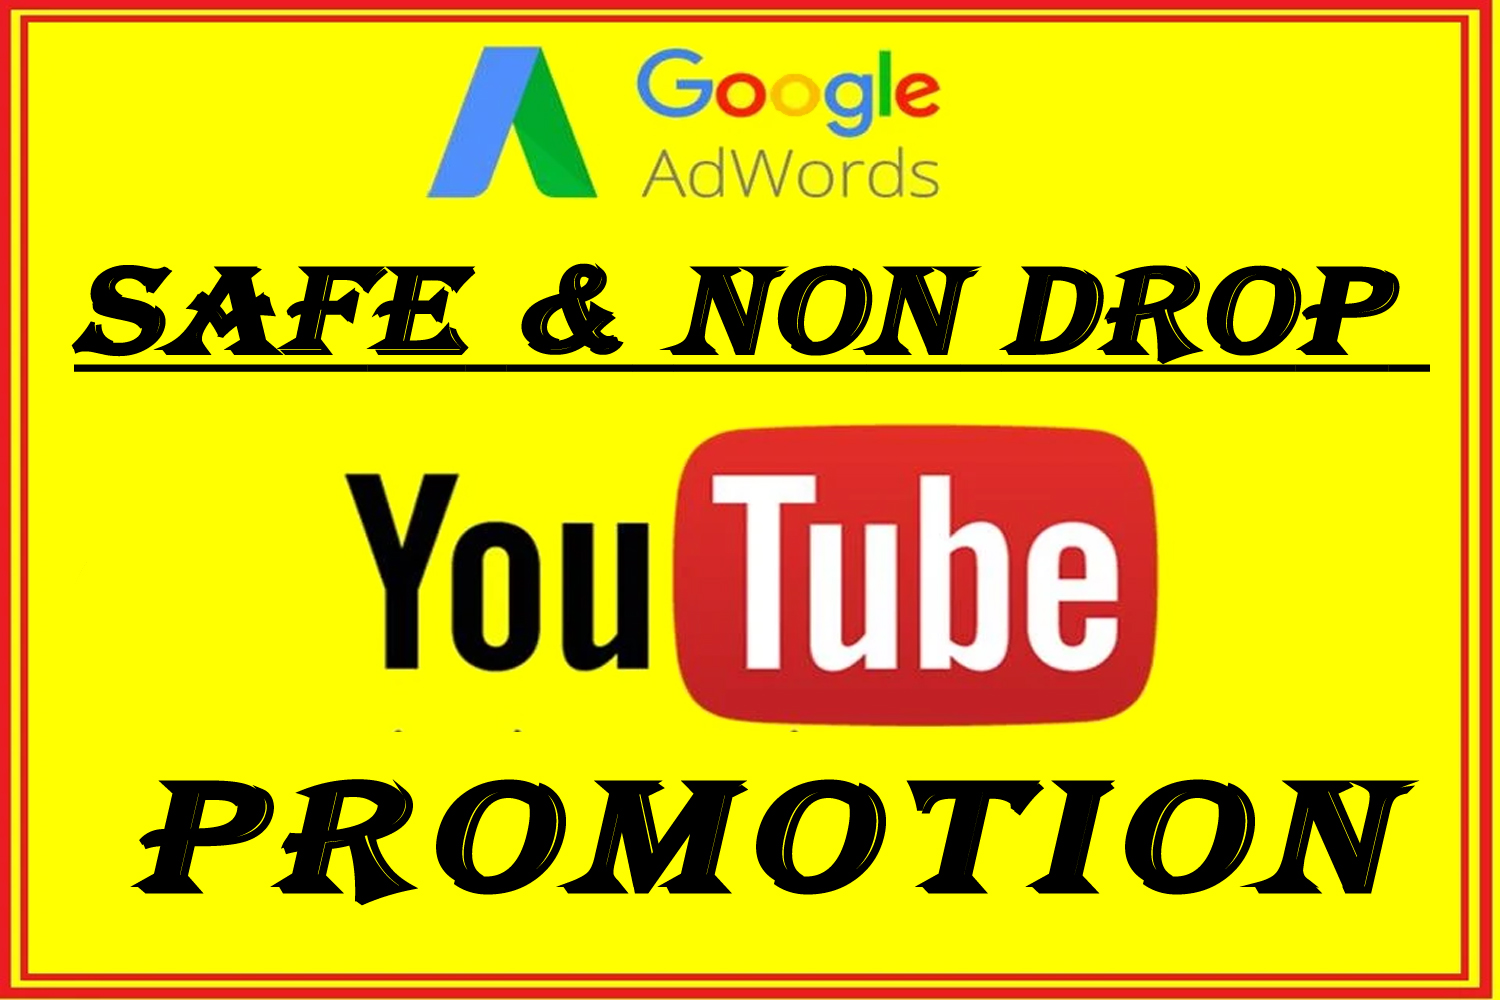 YouTube video Promotion and Marketing real and fast